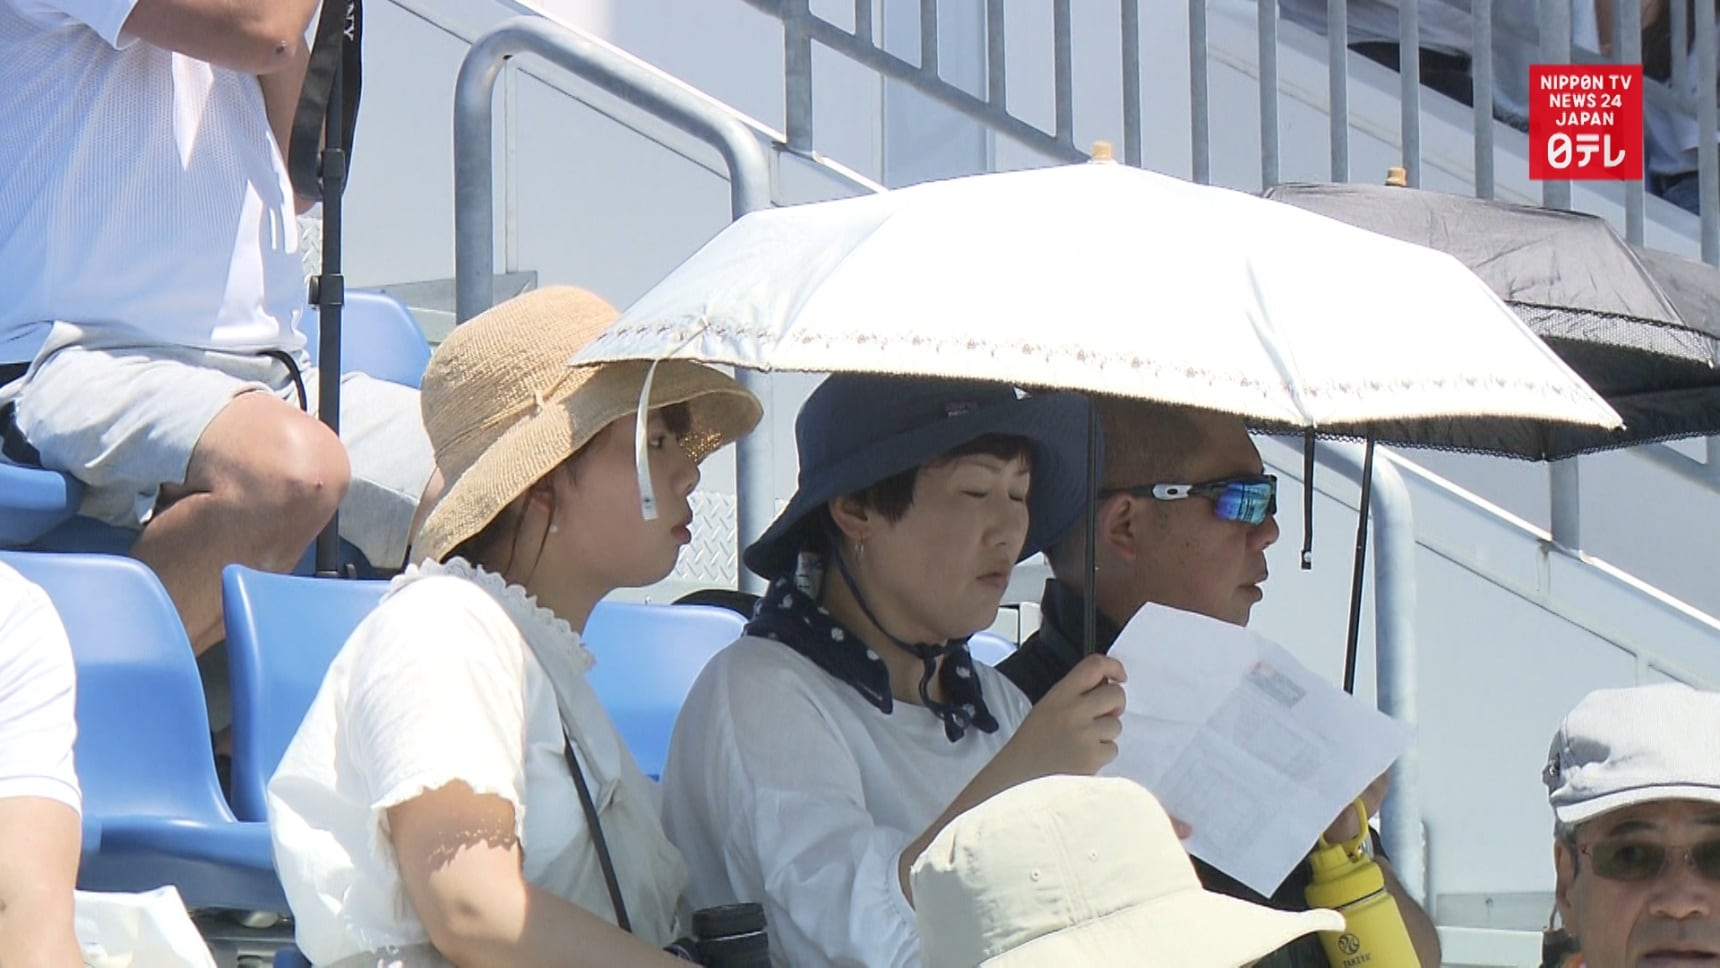 Olympic Planners Study Tokyo's Sizzling Summer